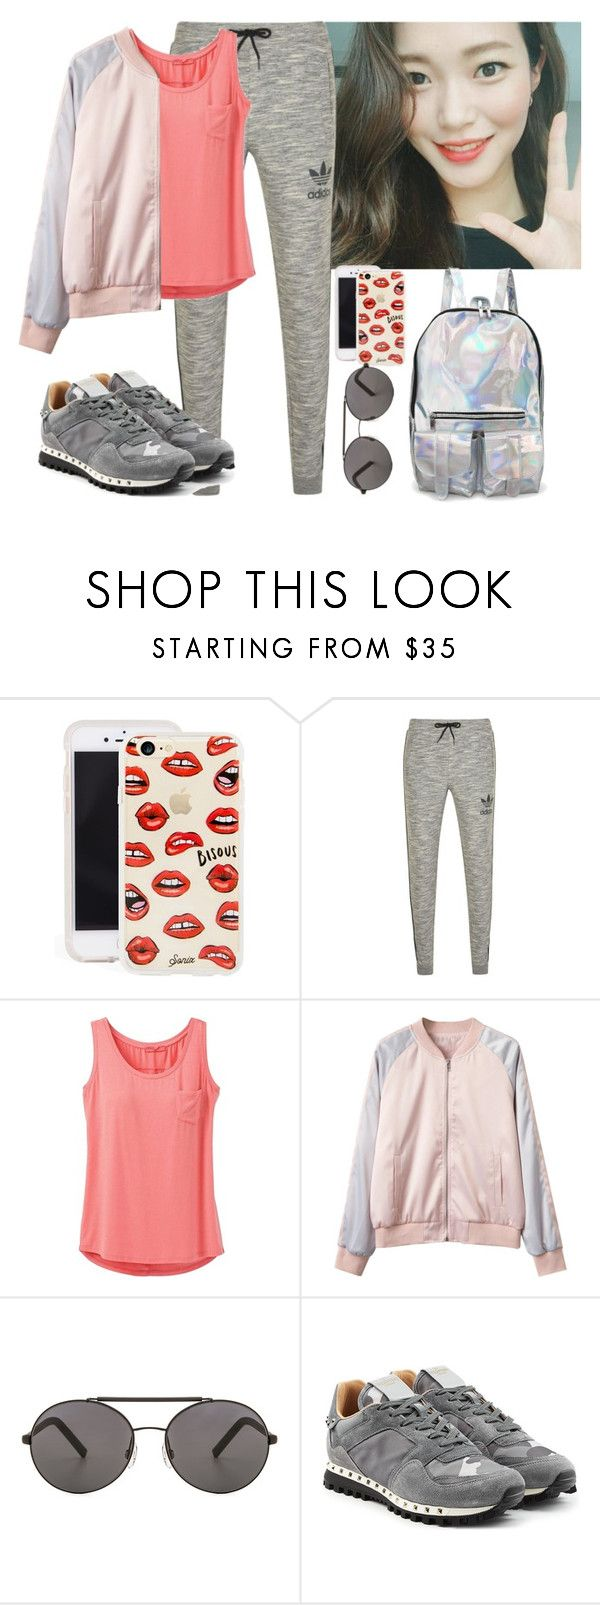 """""""2/27/17"""" by altheaklarize ❤ liked on Polyvore featuring Sonix, adidas Originals, prAna, Seafolly and Valentino"""